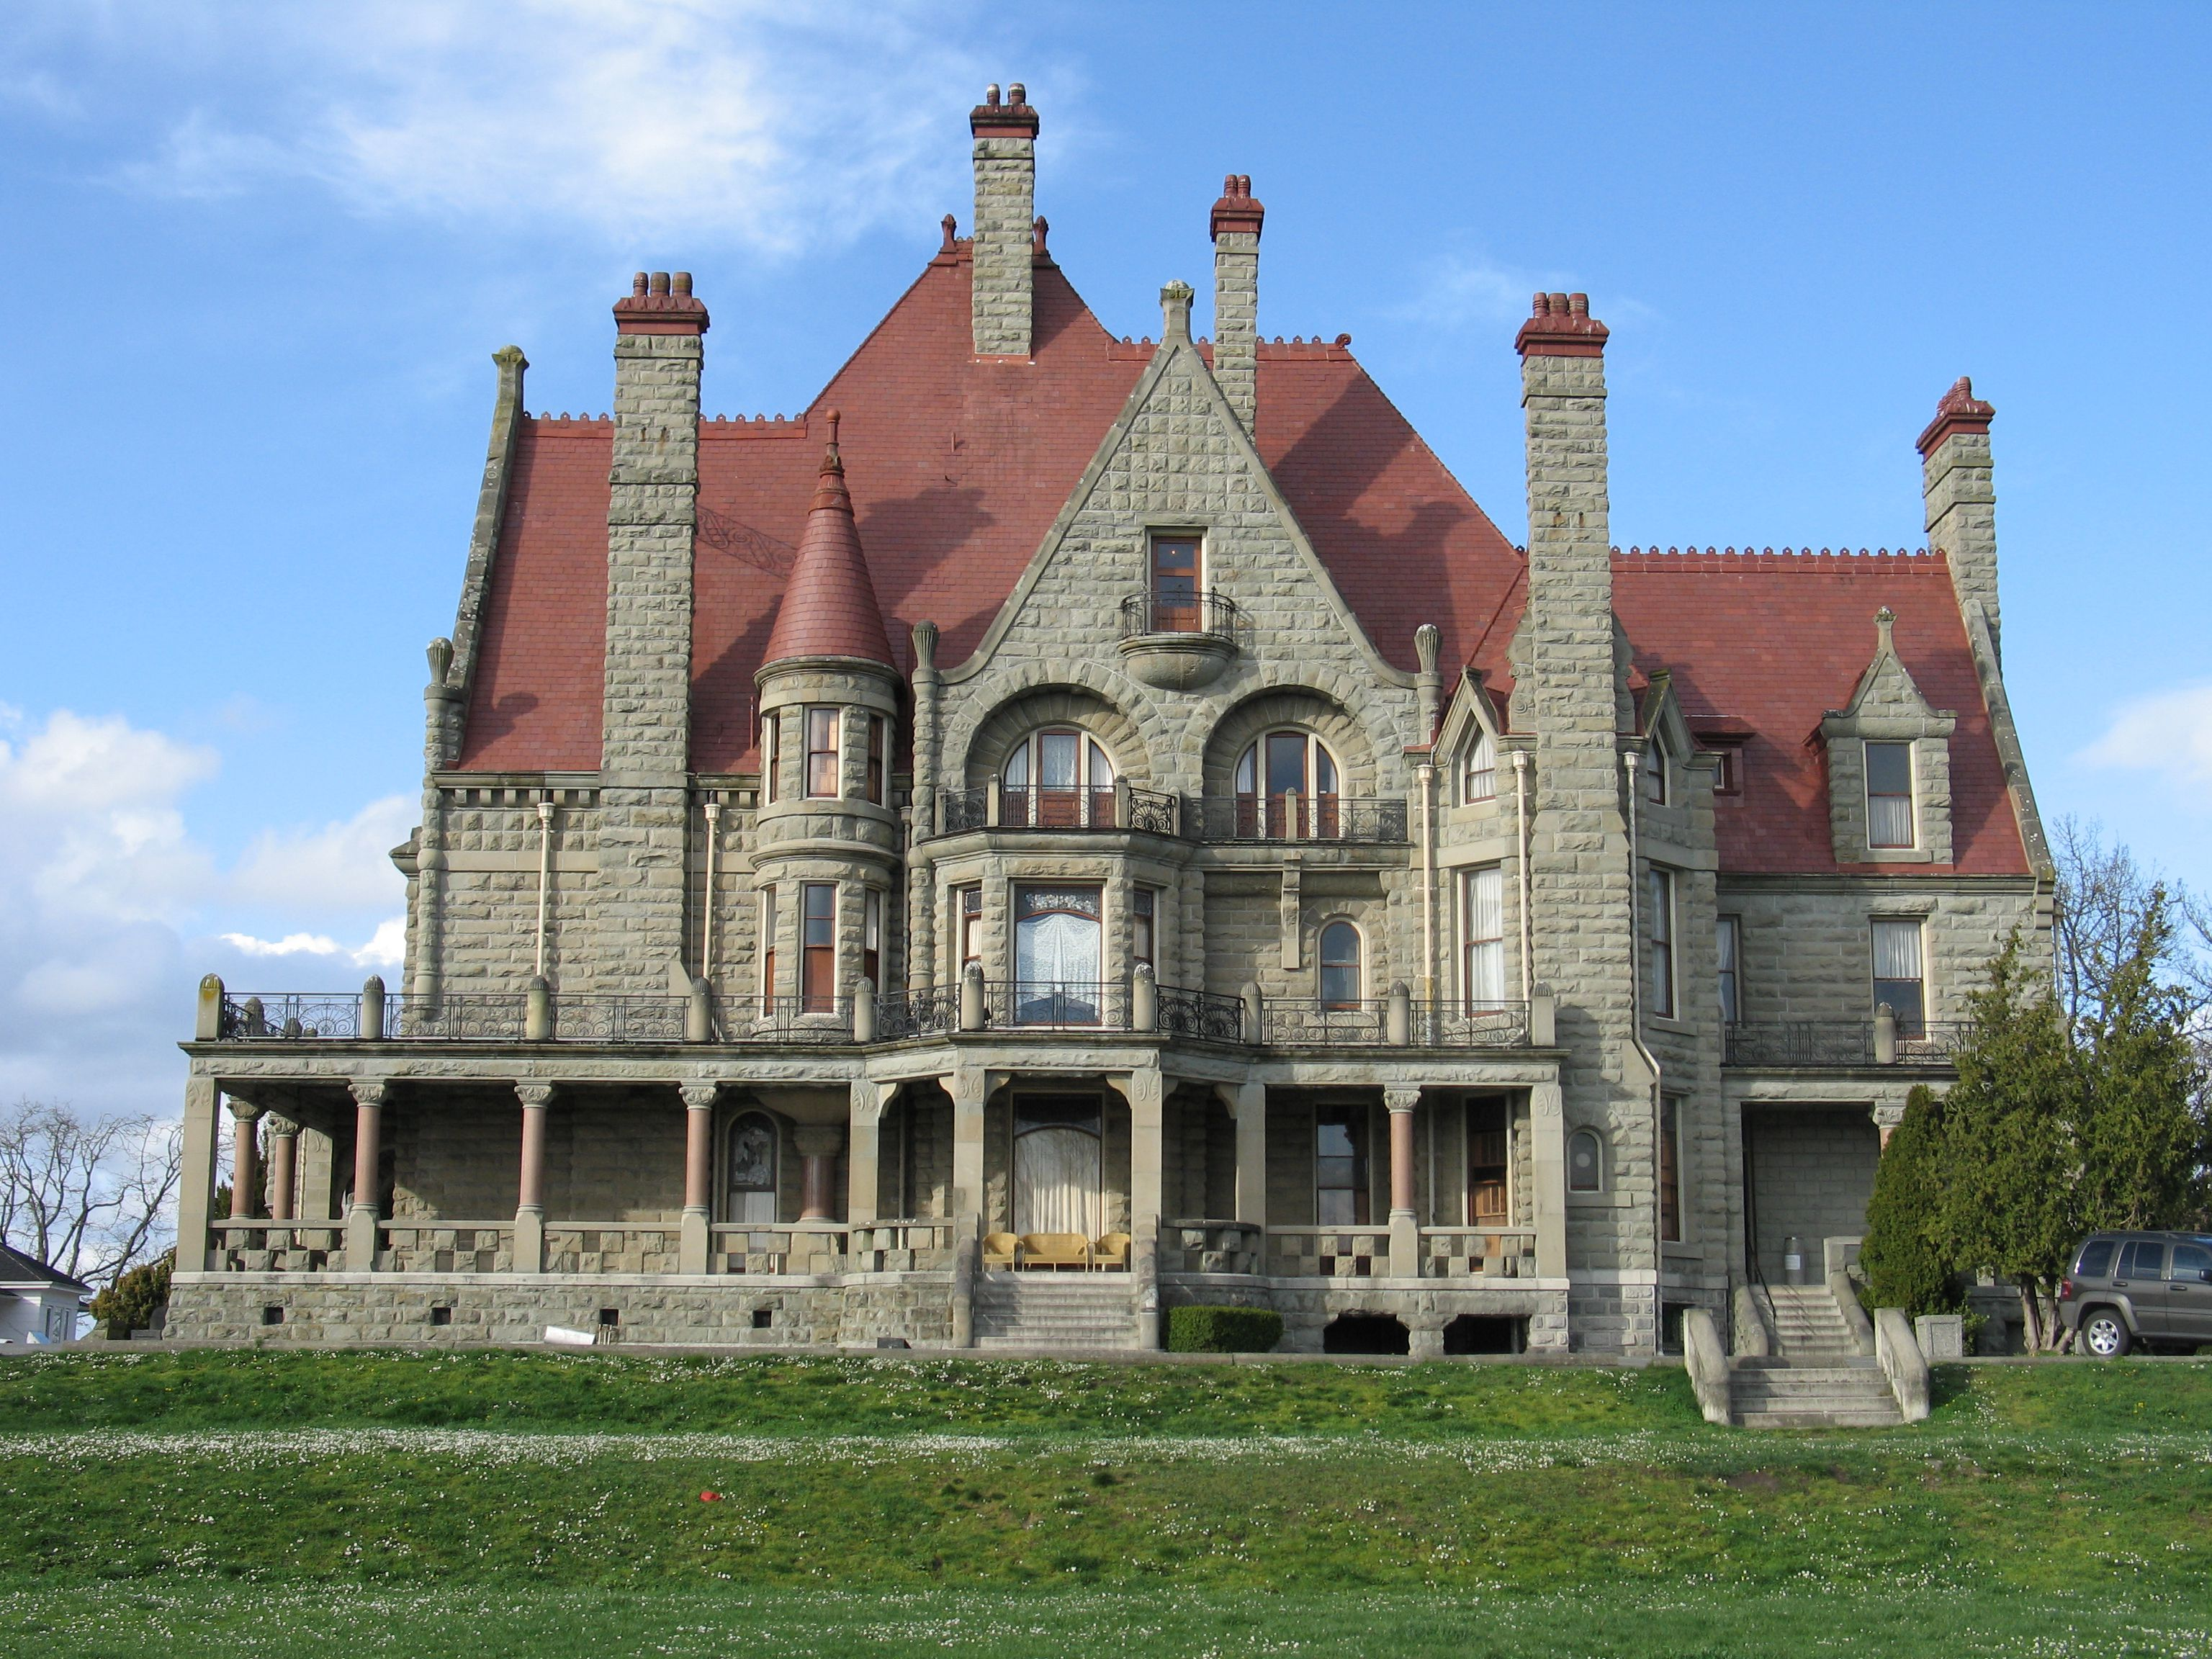 Exterior view of Craigdarroch Castle in Vancouver.